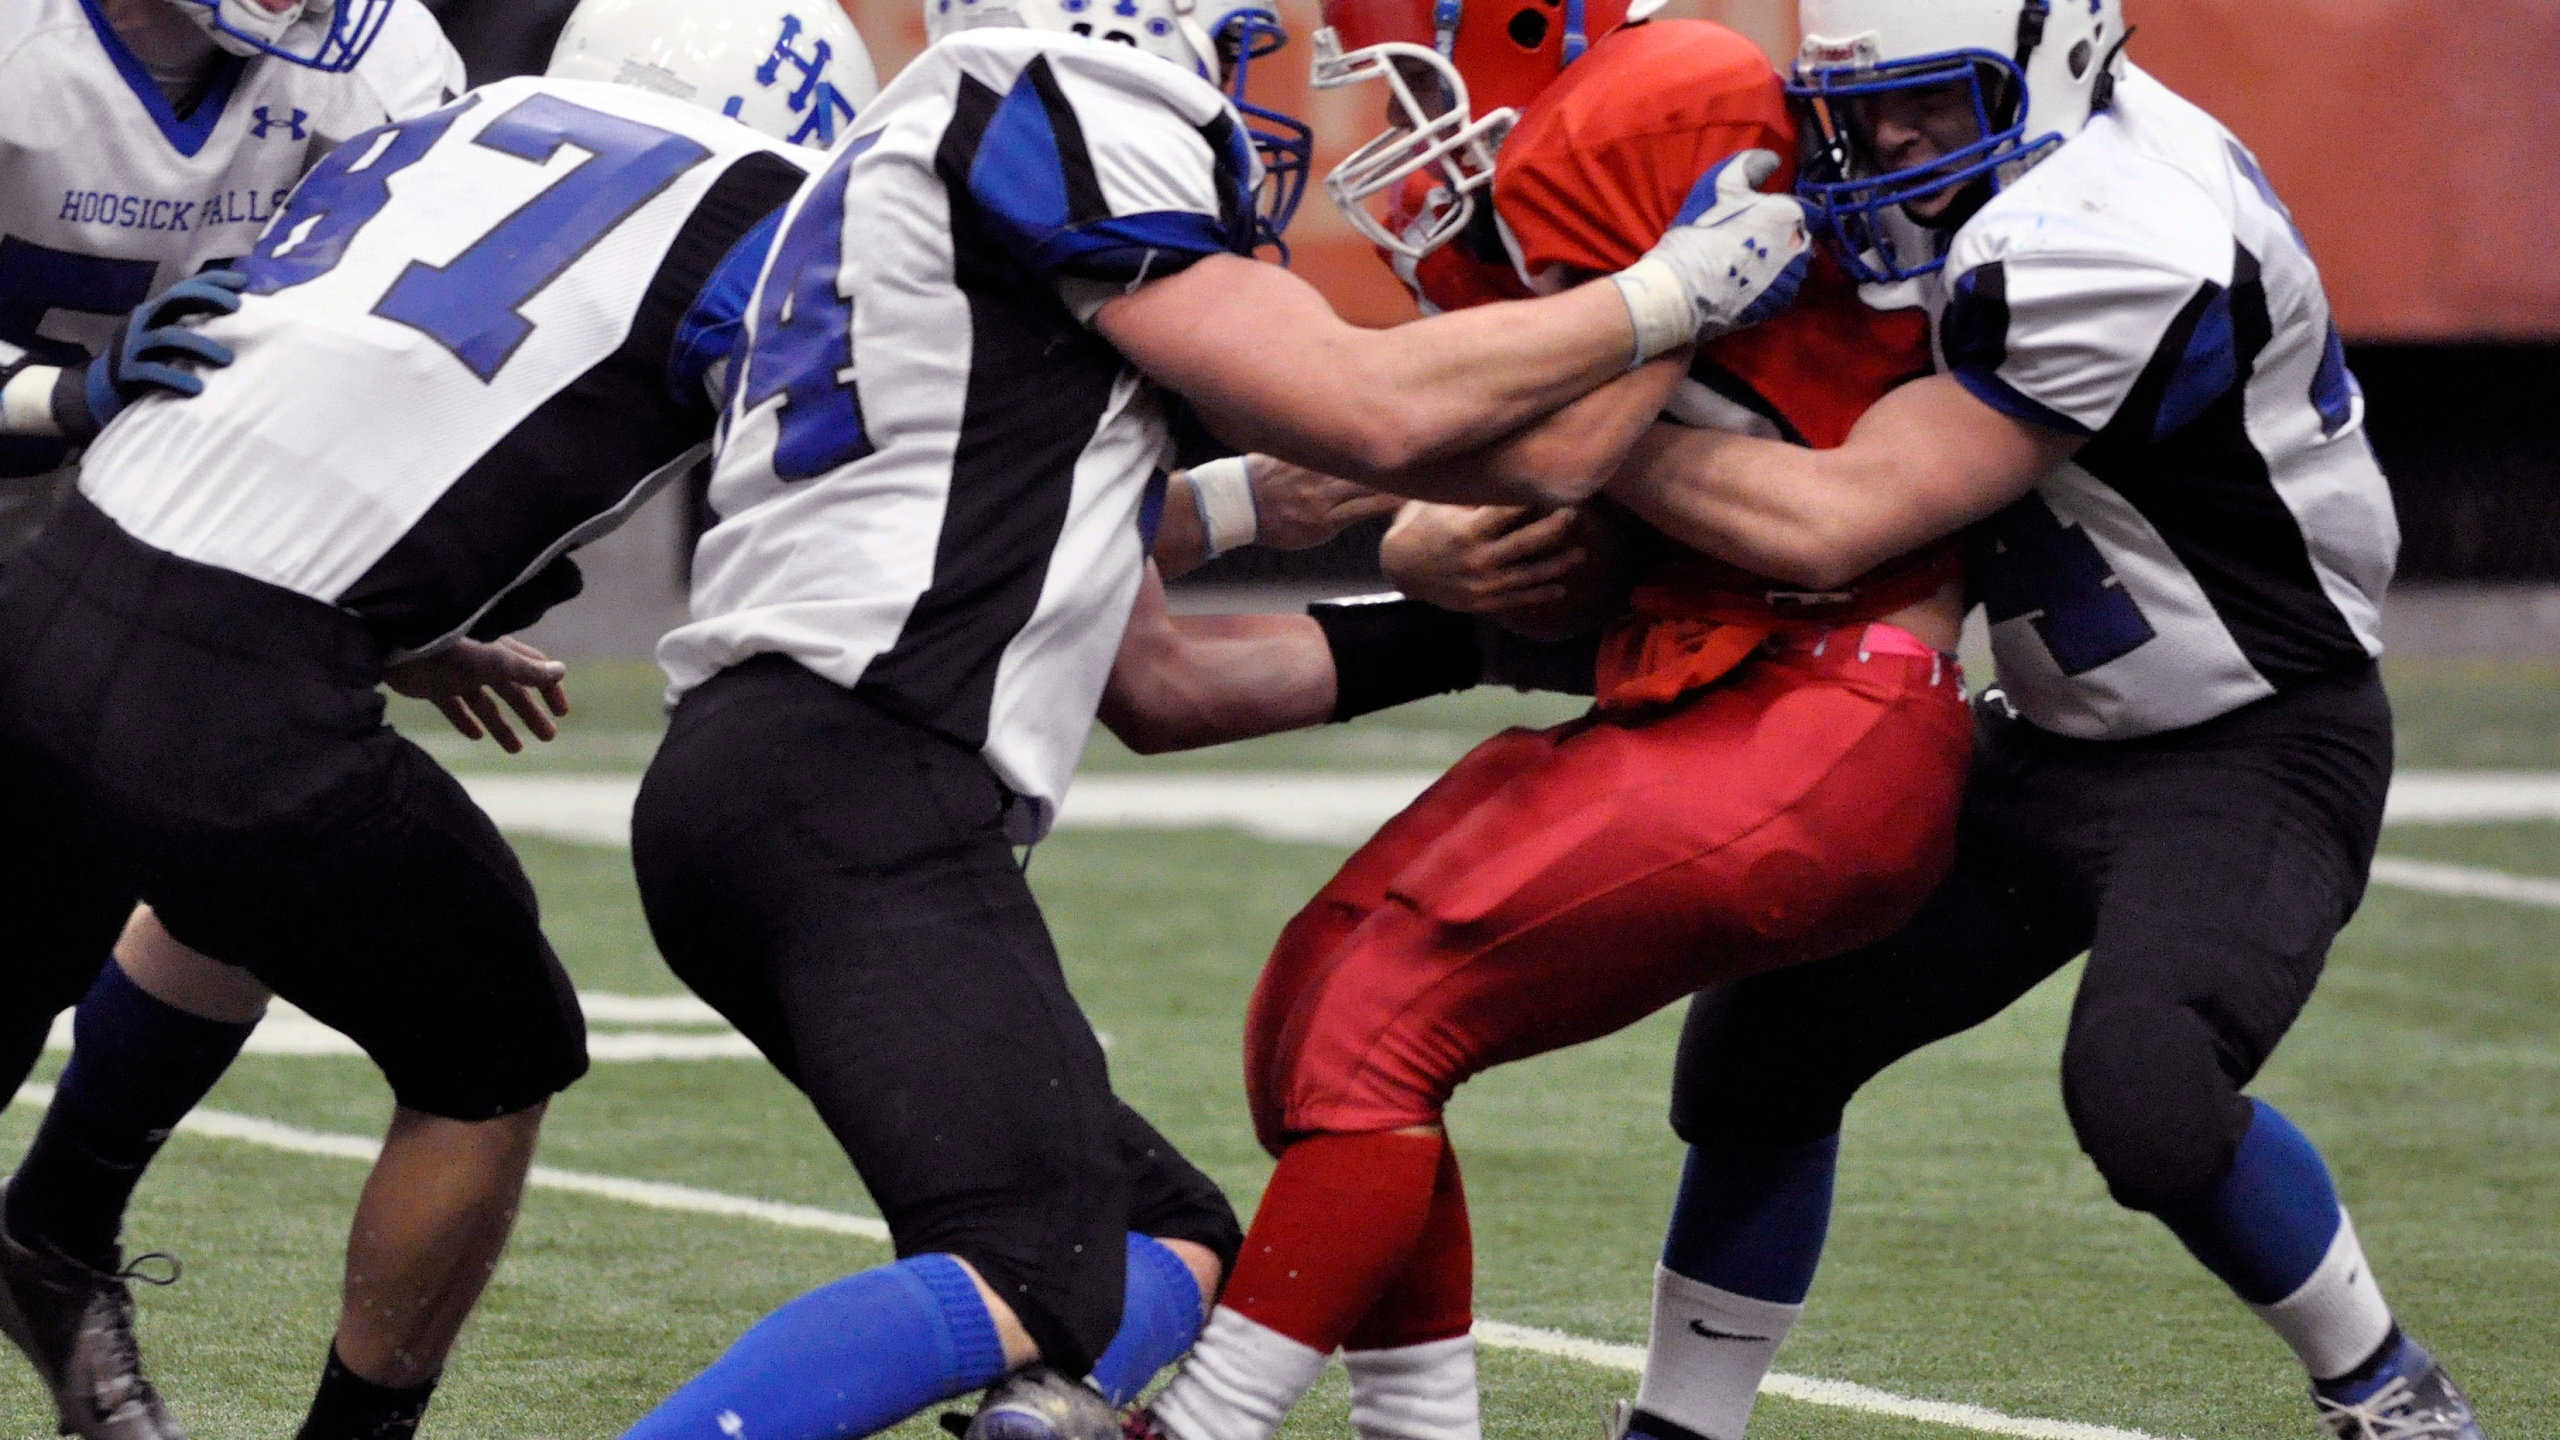 Hoosick Falls at Hornell at the 2012 New York State High School Football Class C championship game in Syracuse